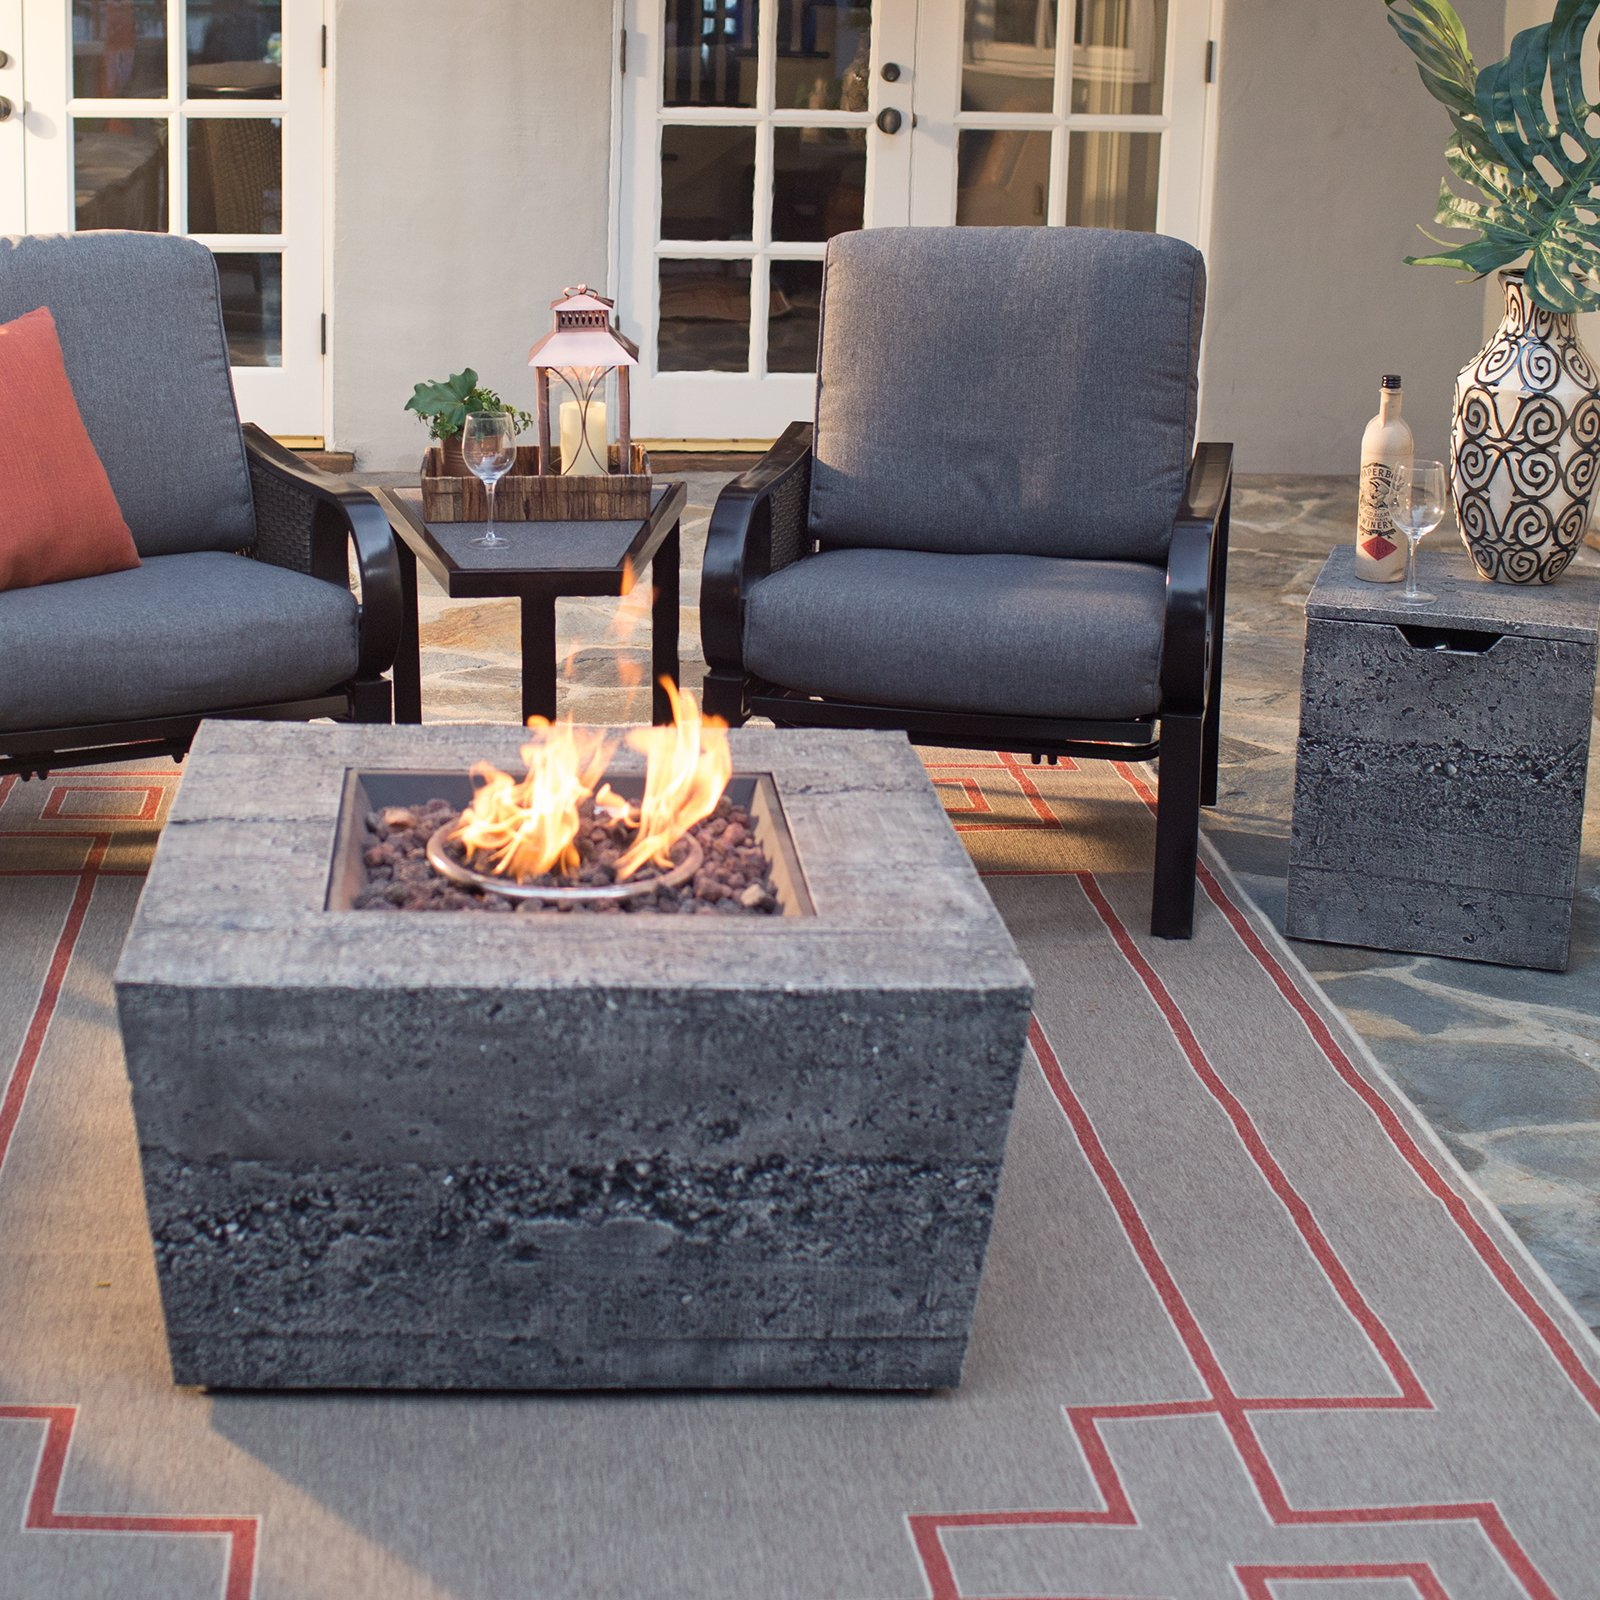 Red Ember Glacier Stone 35 in Square Gas Fire Pit Table with FREE